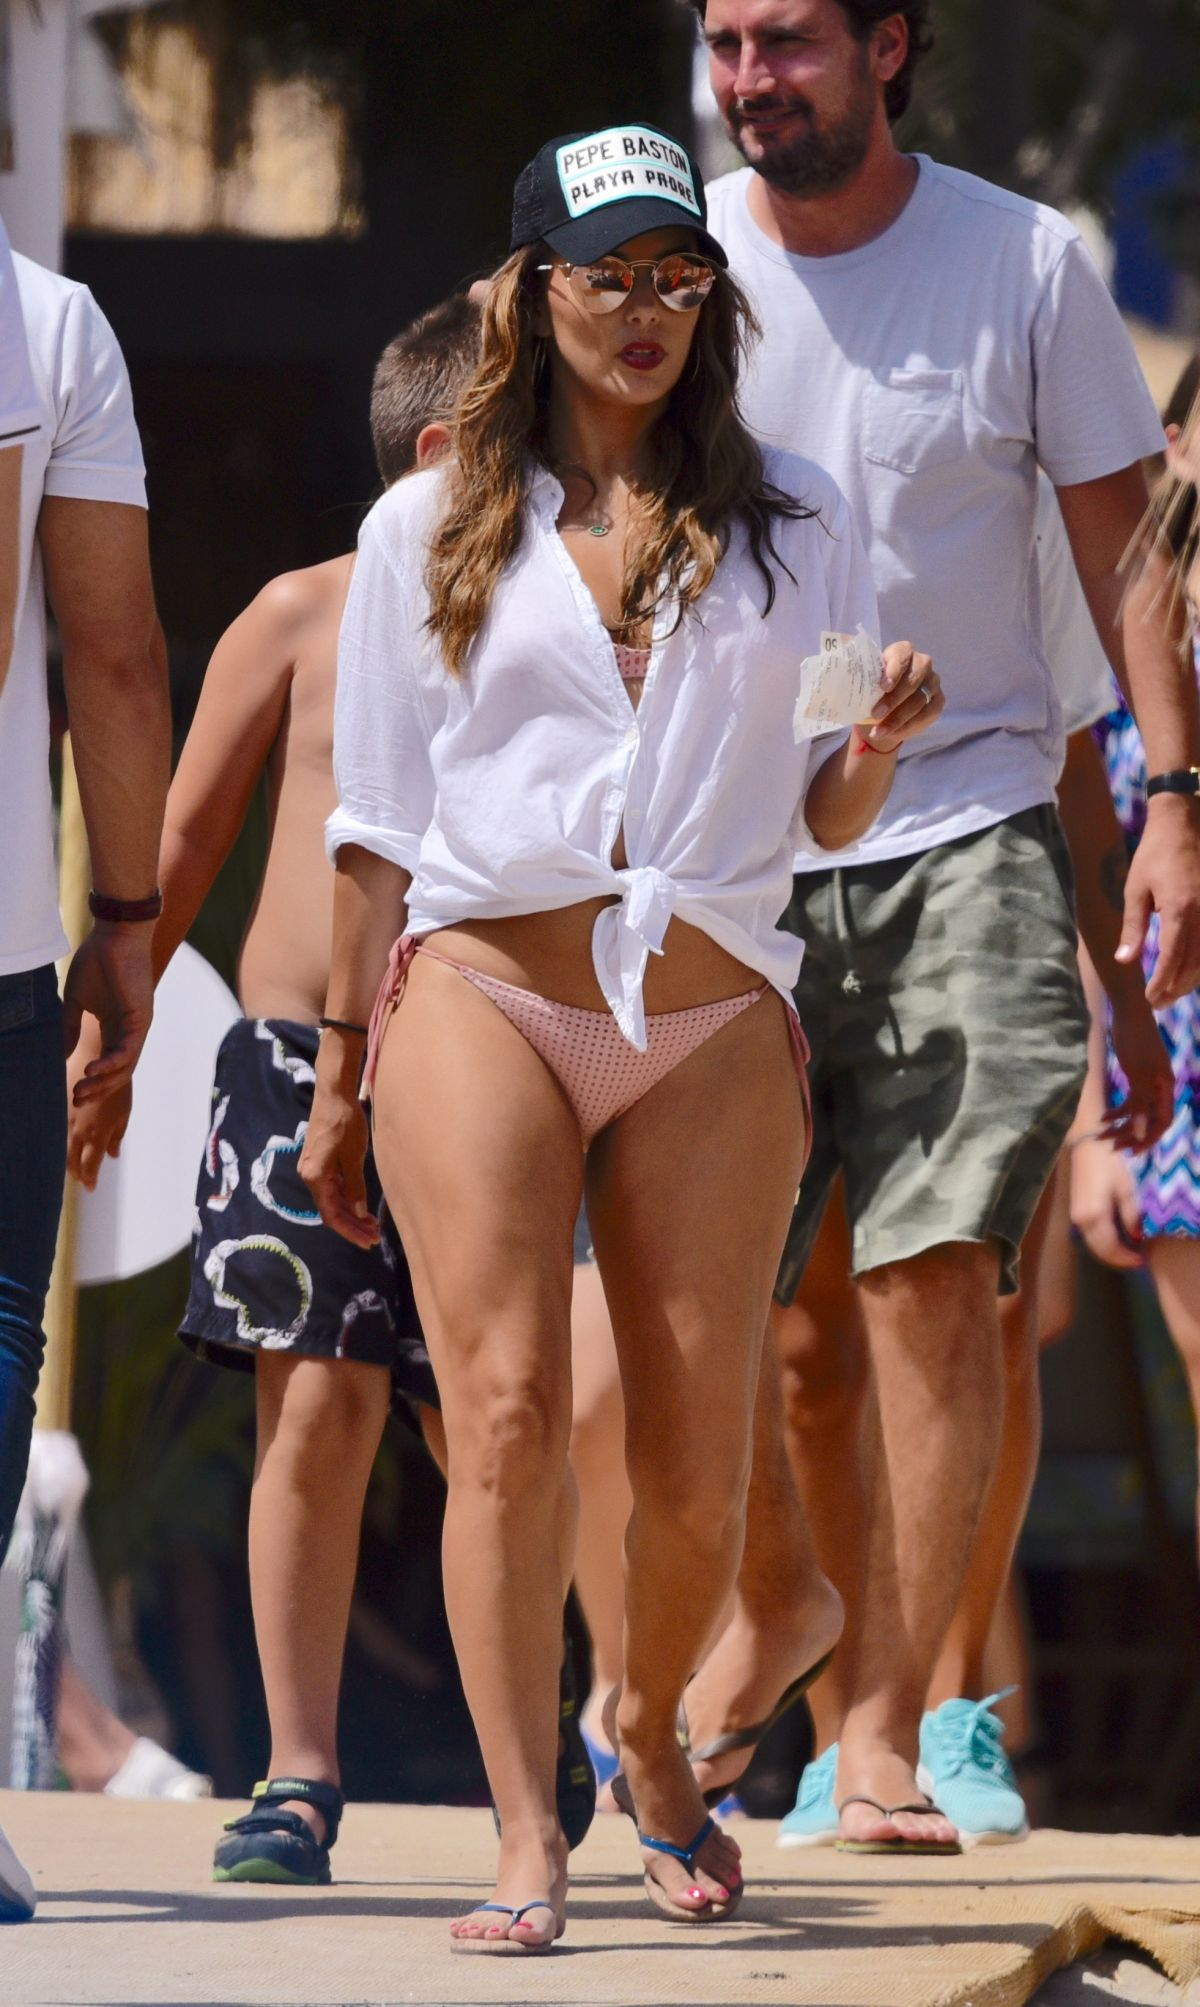 eva-longopria-in-bikini-on-the-beach-in-marbella-07-16-2017_16.jpg